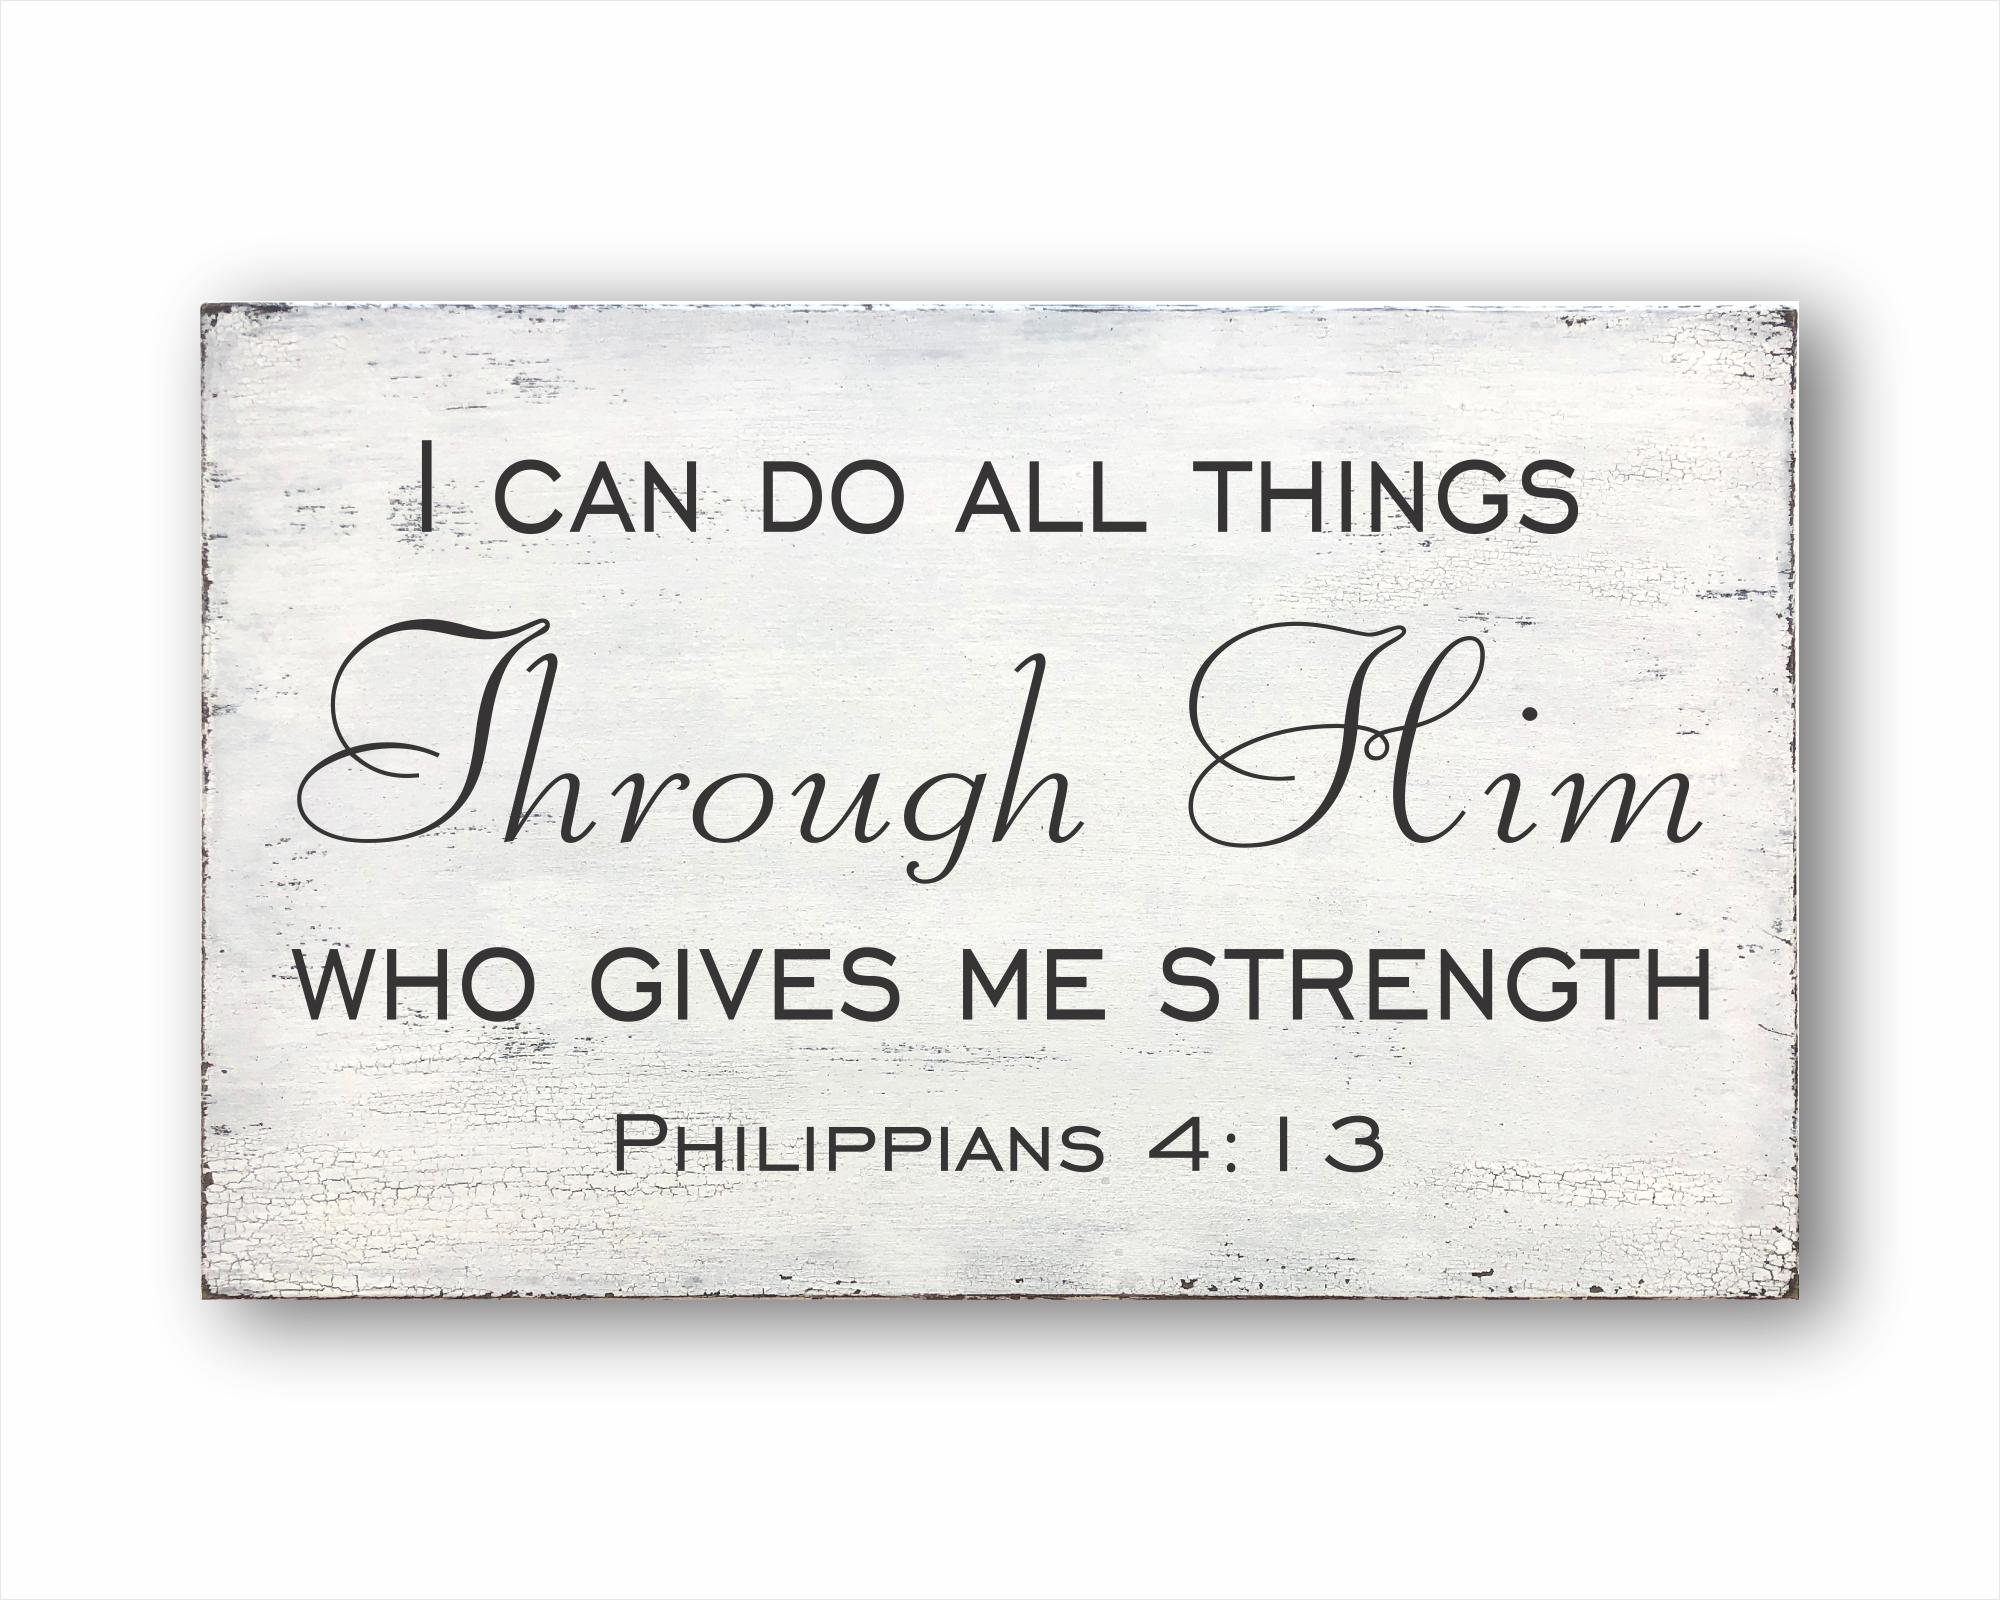 ffd954757 I Can Do All Things Through Him Who Gives Me Strength Philippians 4:13 Box